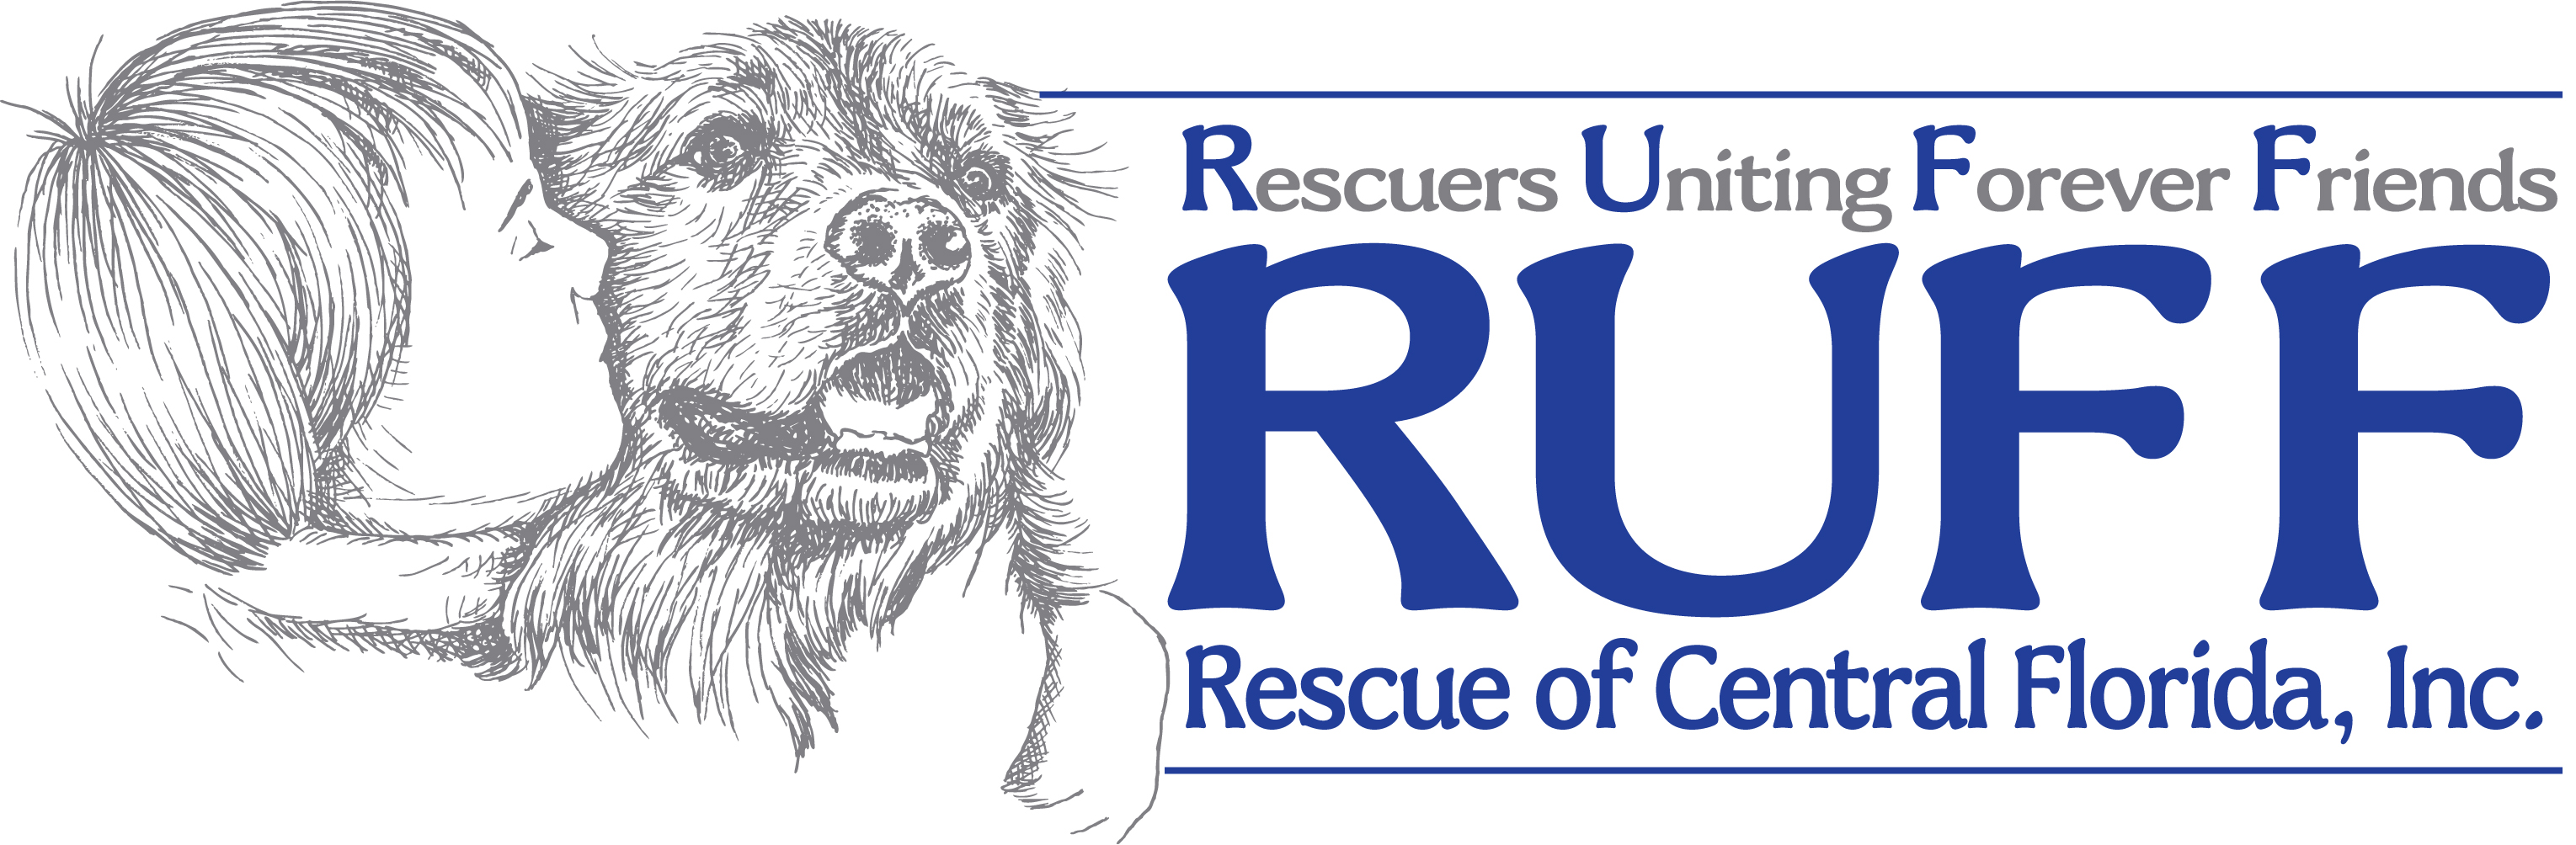 RUFF Rescue of Central Florida, Inc.